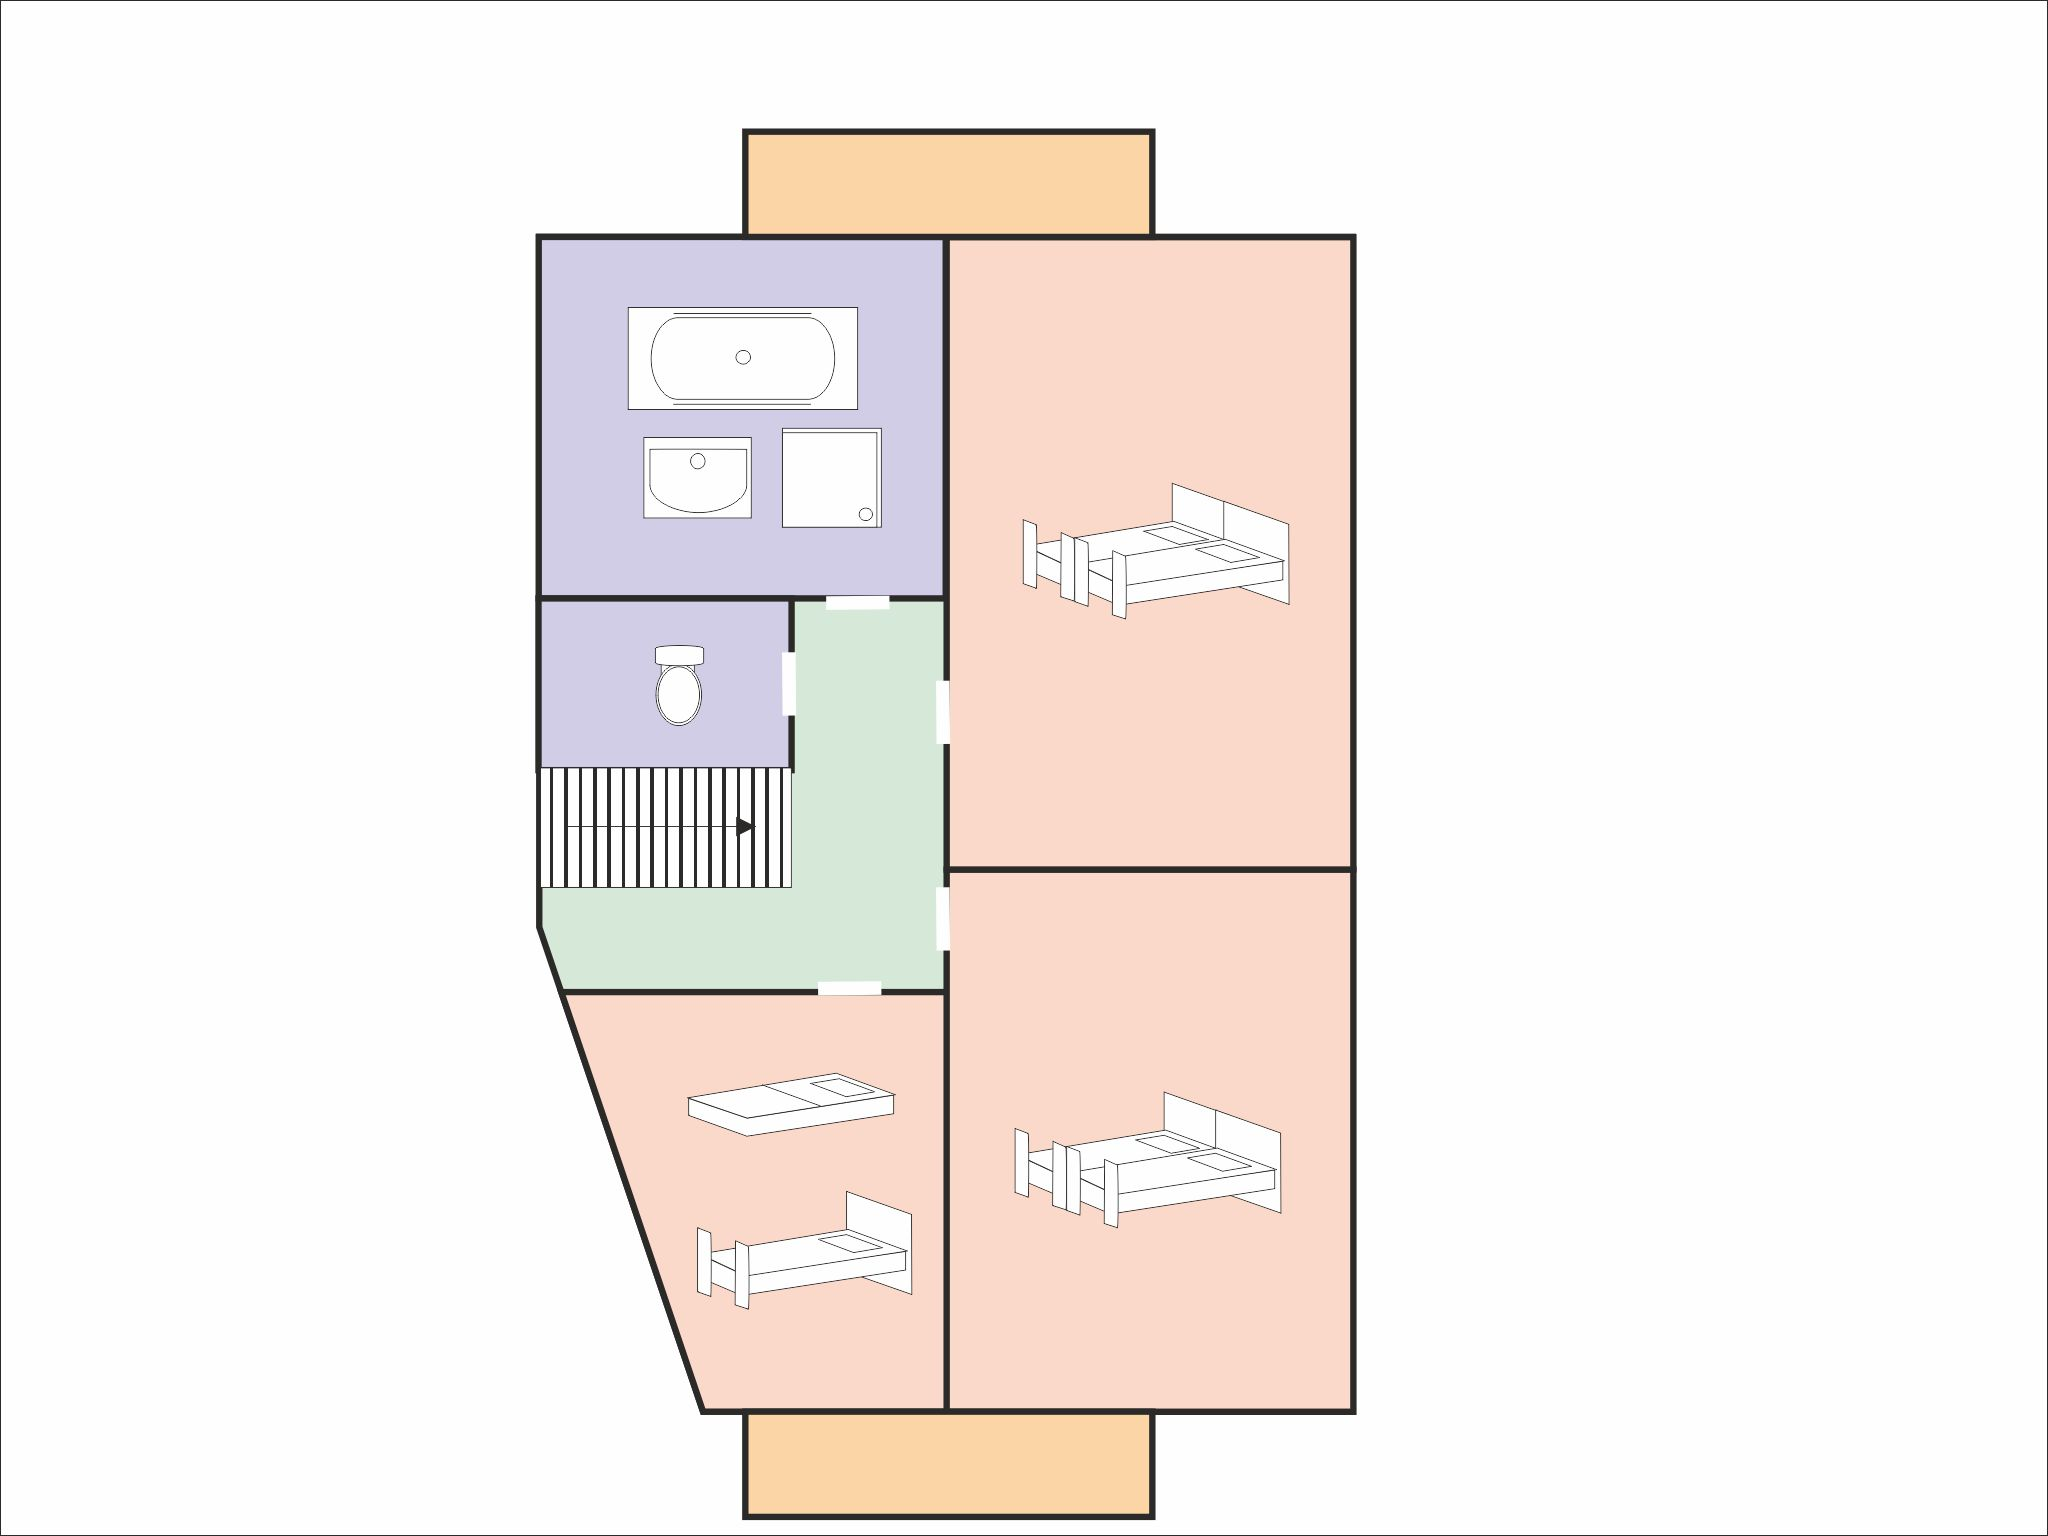 Chalet Raffort Méribel - floor plan - level 2